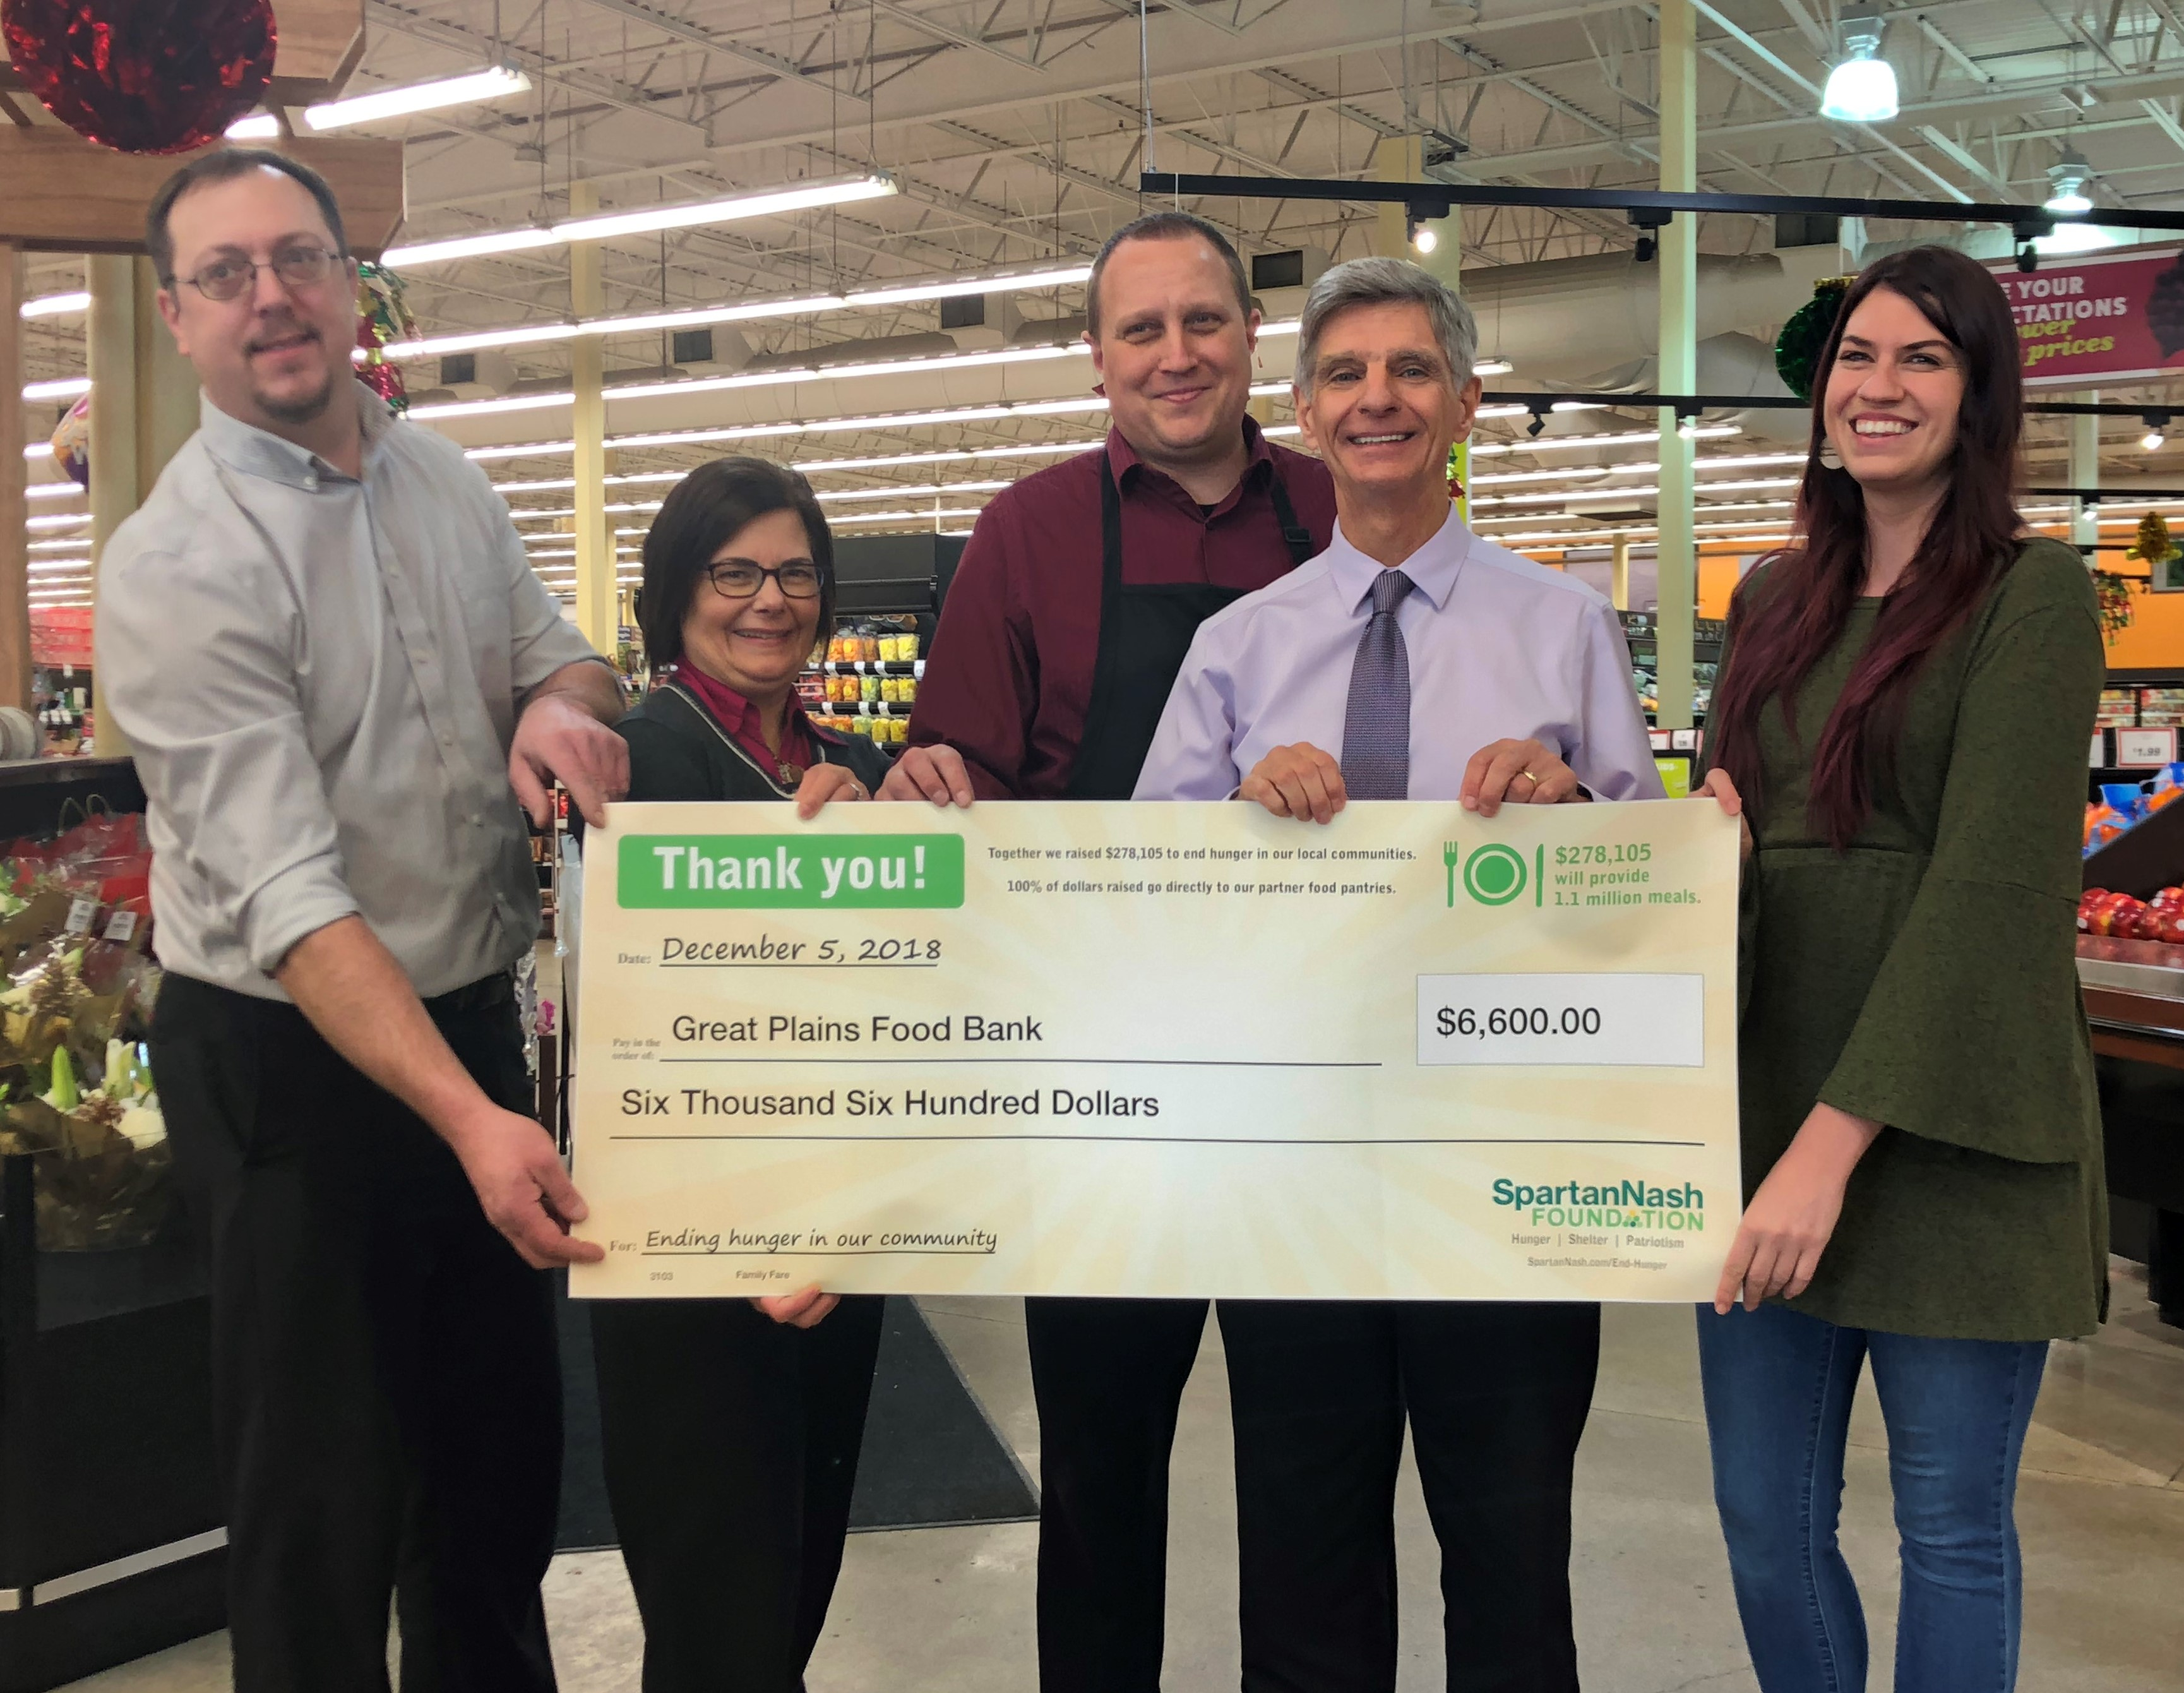 SpartanNash Foundation donates $6,600 to Great Plains Food Bank through annual scan campaign